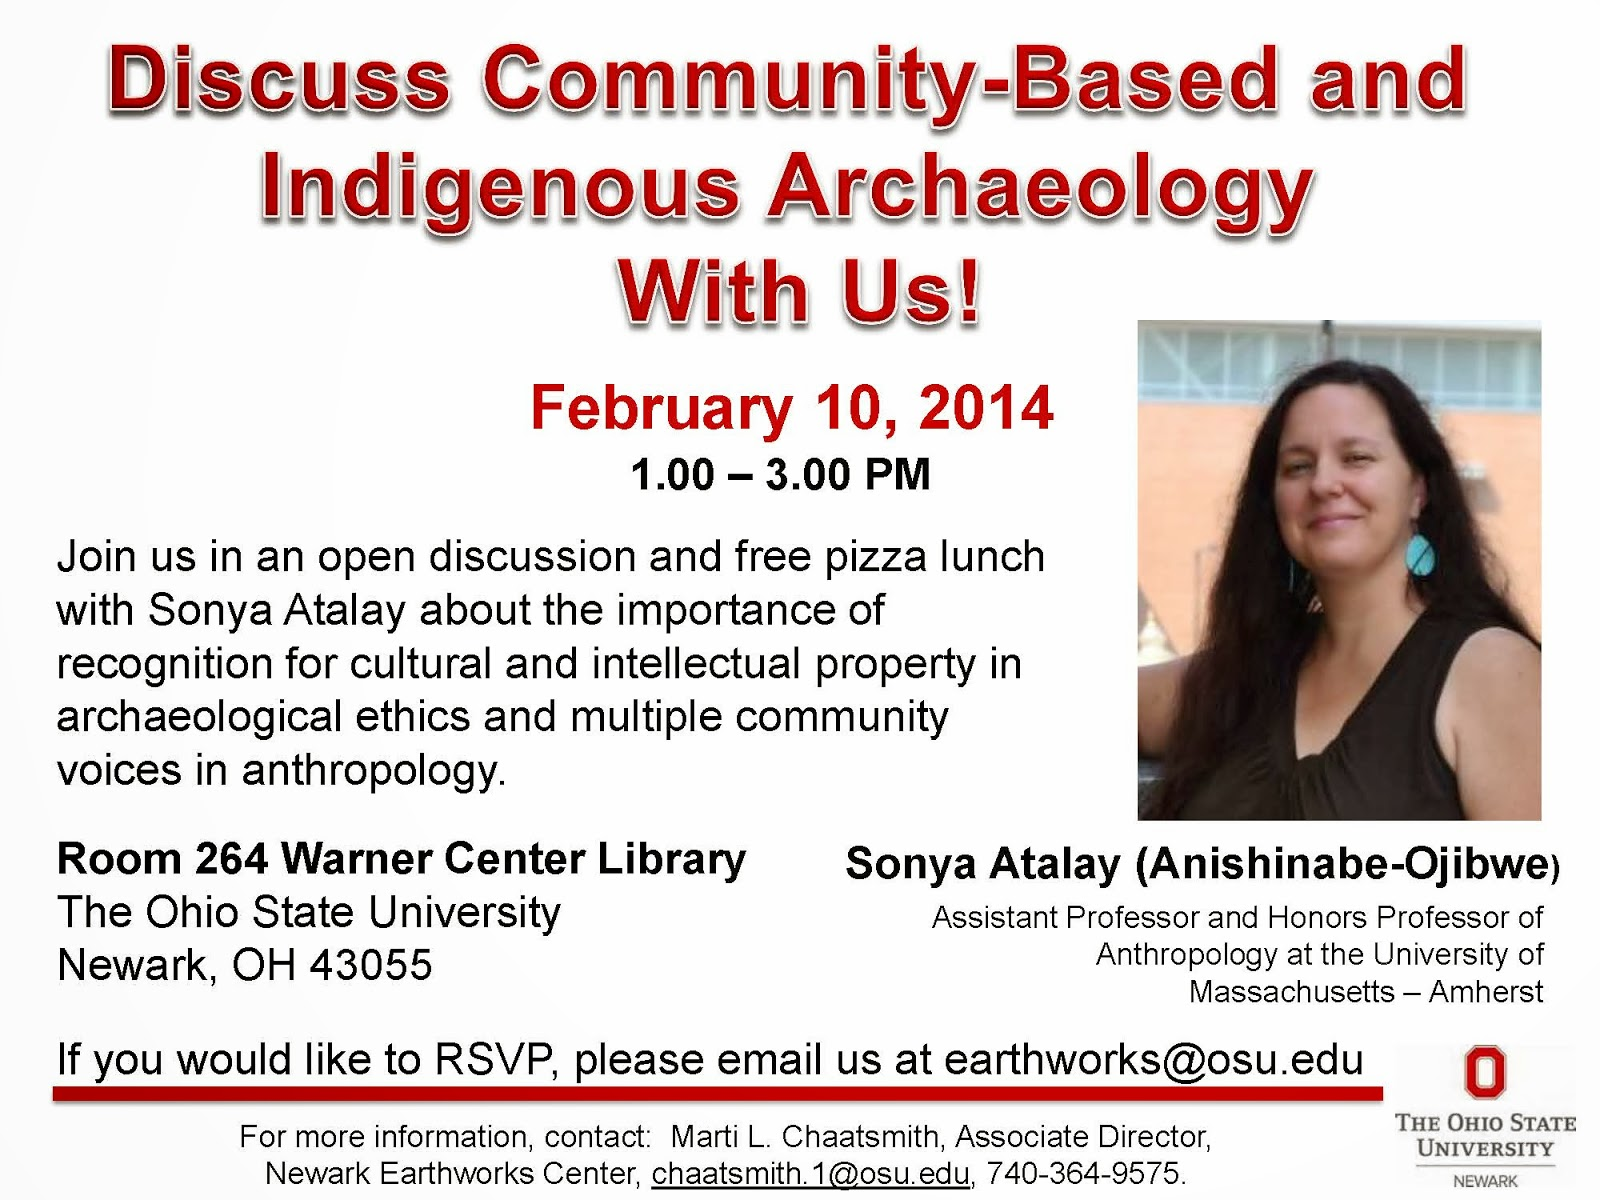 Discuss Community-Based and Indigenous Archaeology PDF Flyer